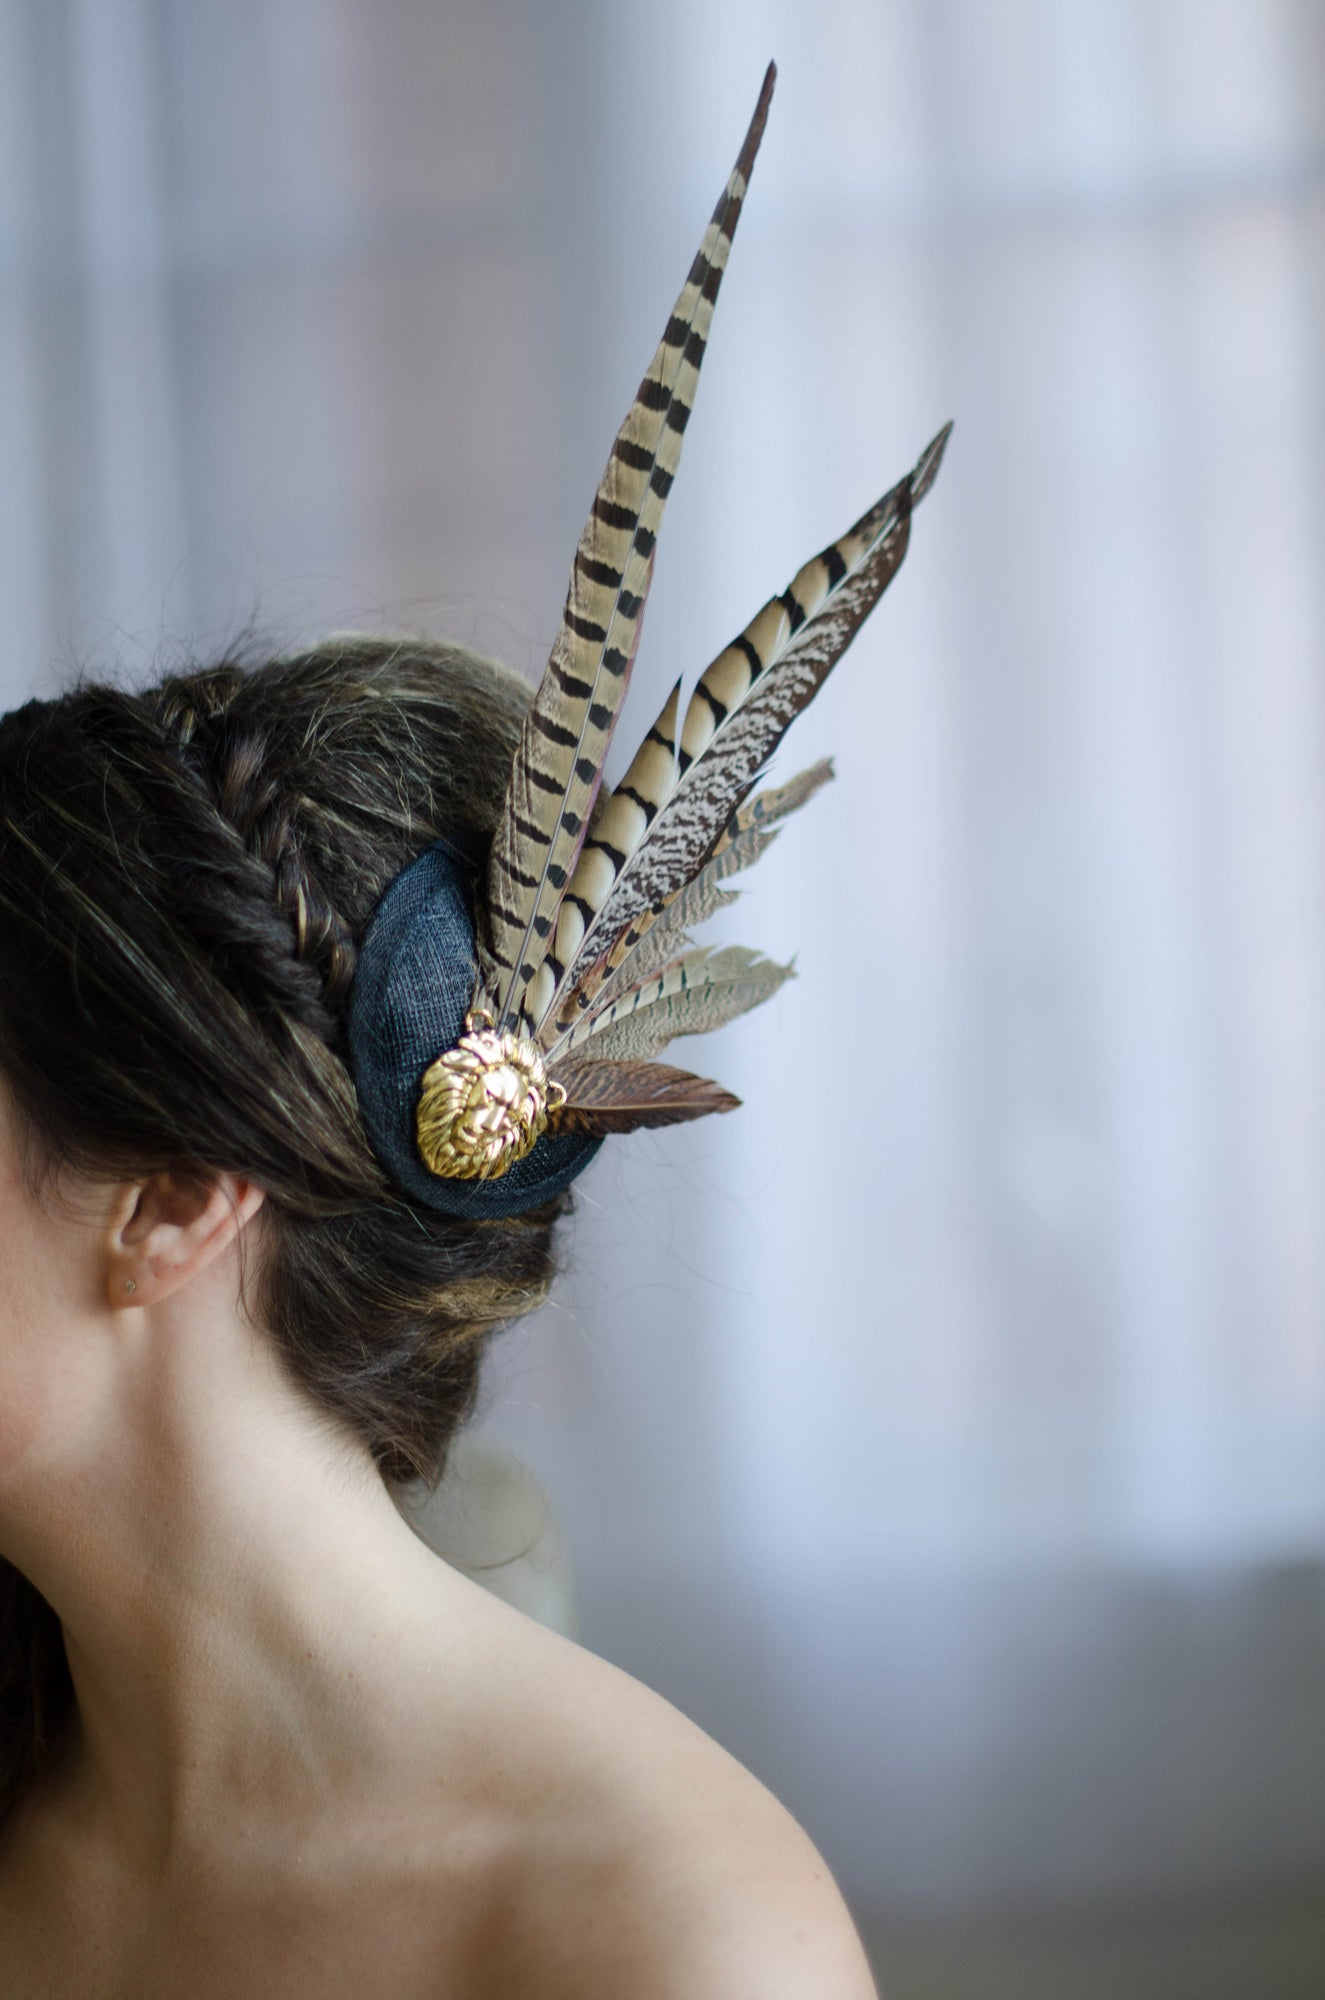 This couture pheasant feather cocktail hat would be the perfect complement to any rustic winter woodland wedding by adding a touch of sophistication and glamour.